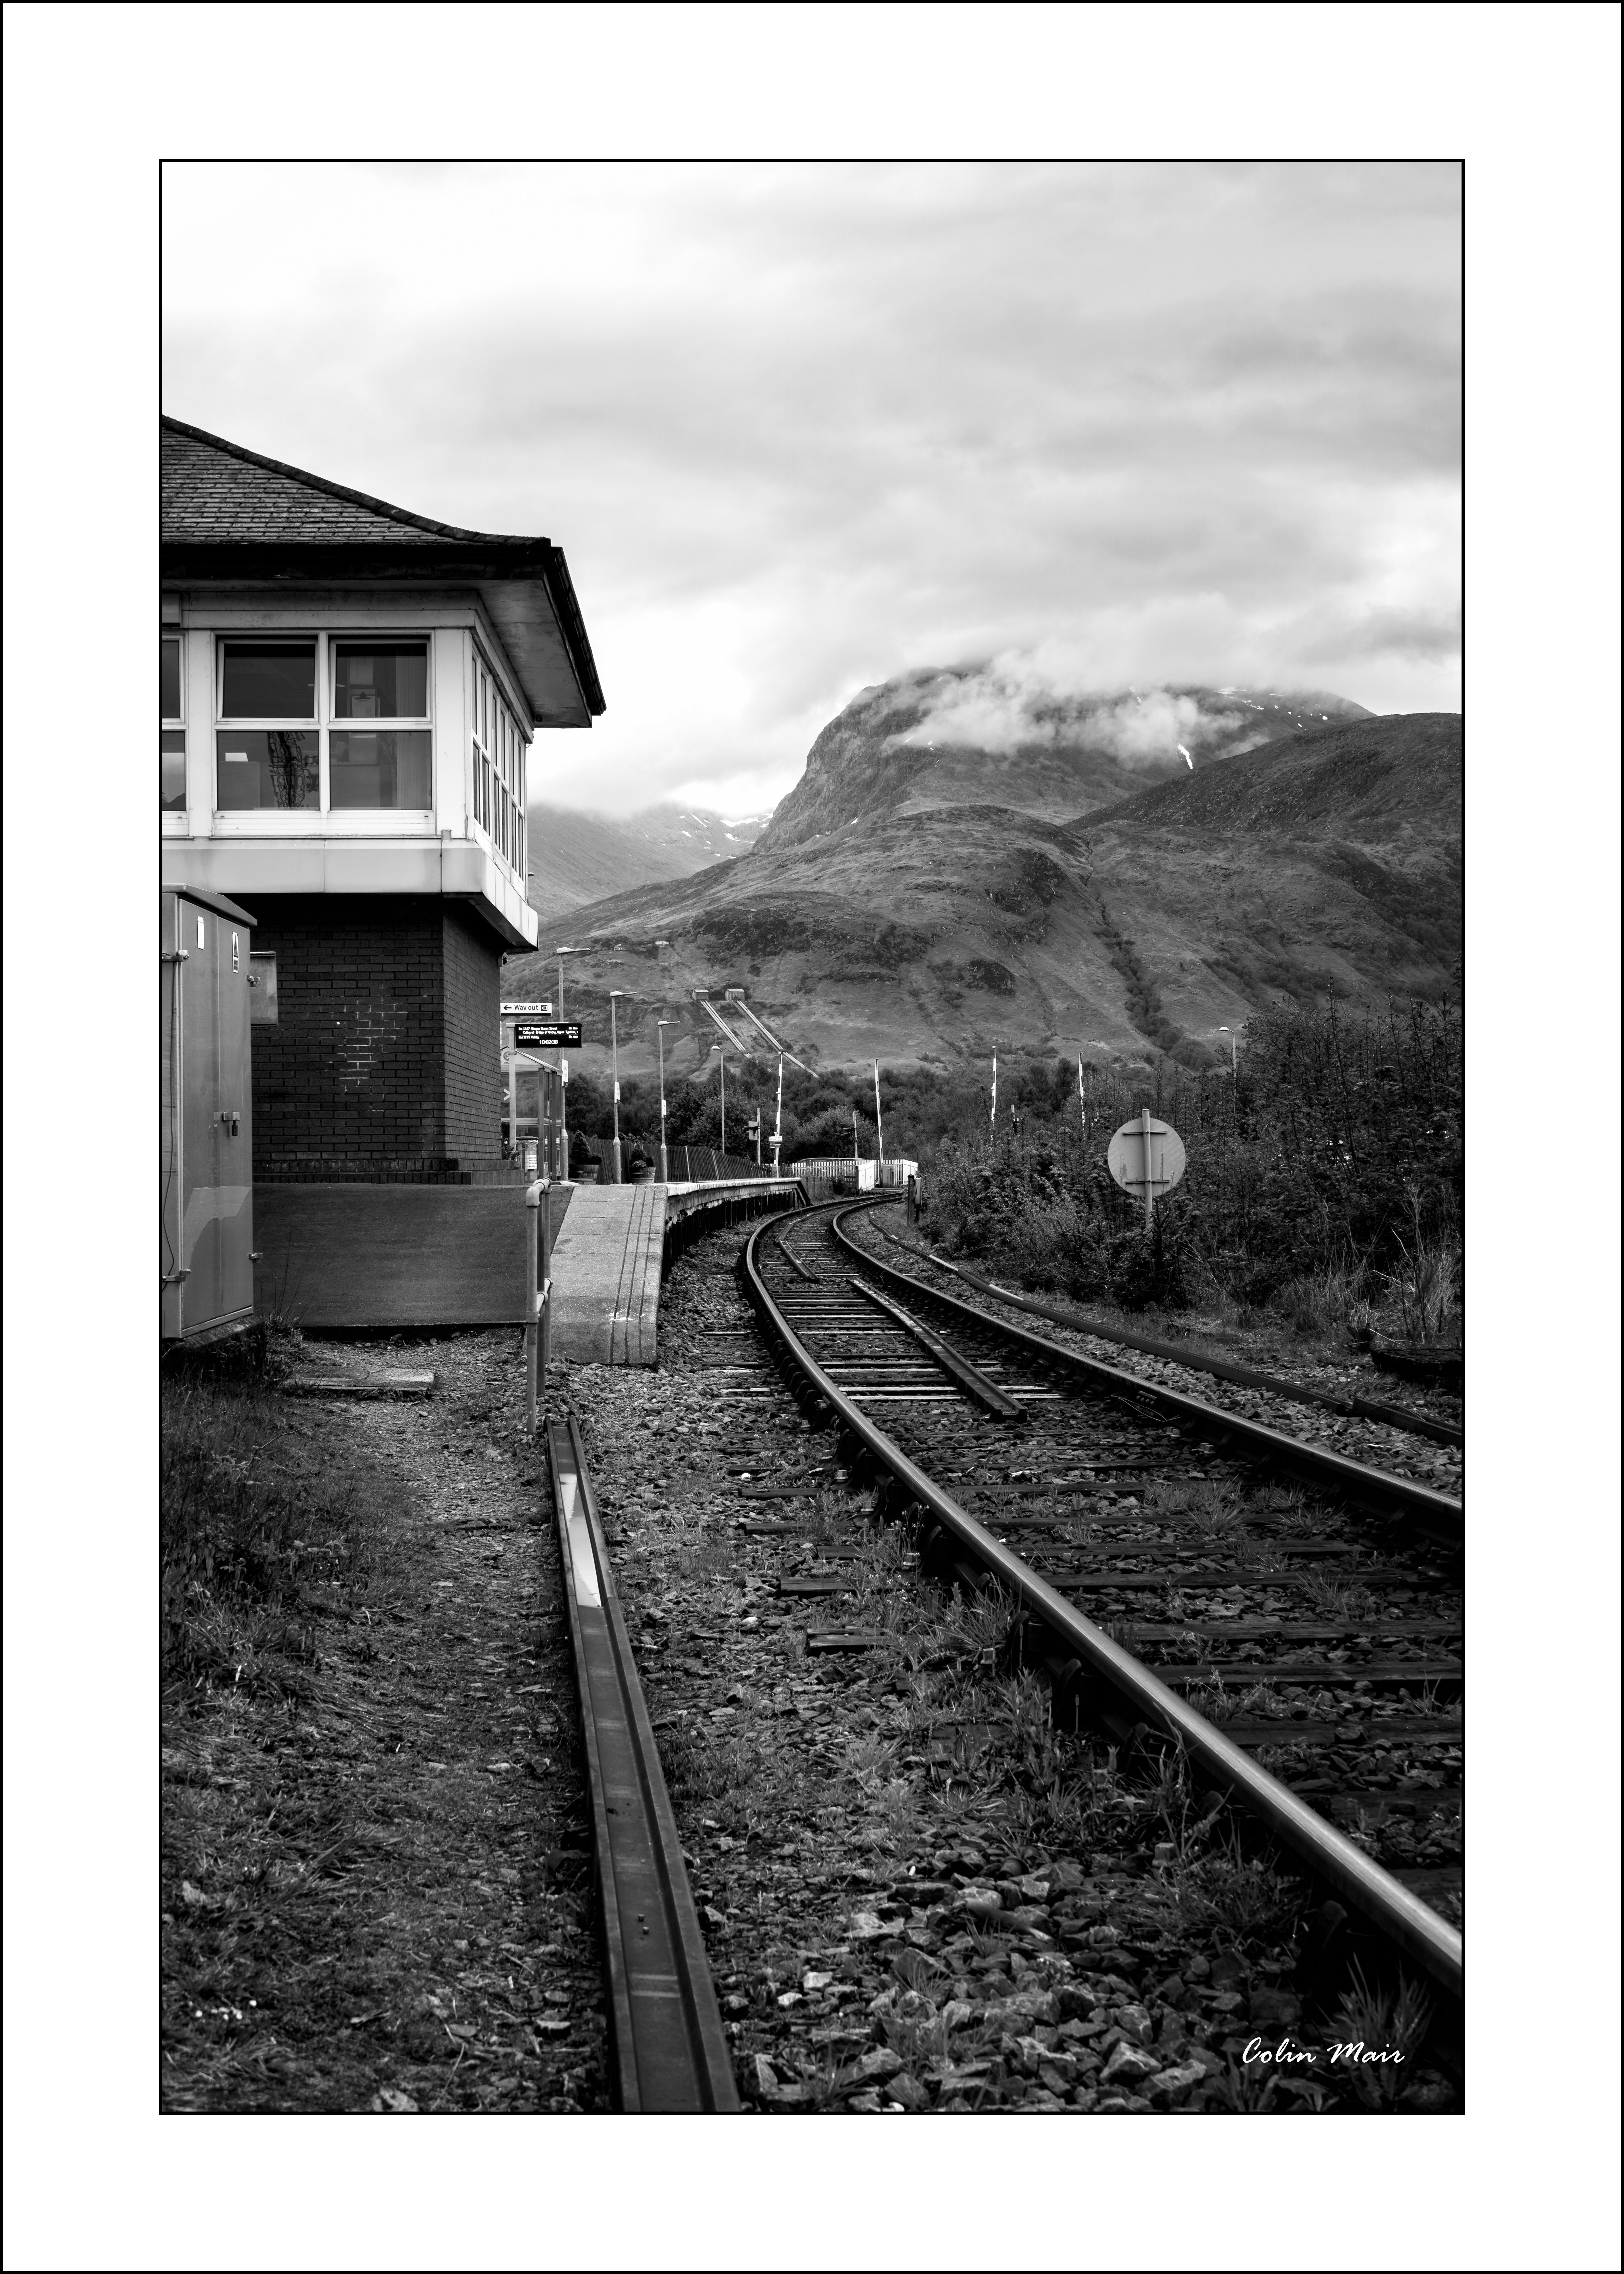 Signal Box - 2019-04-27th, Fort William, Scotland, UK